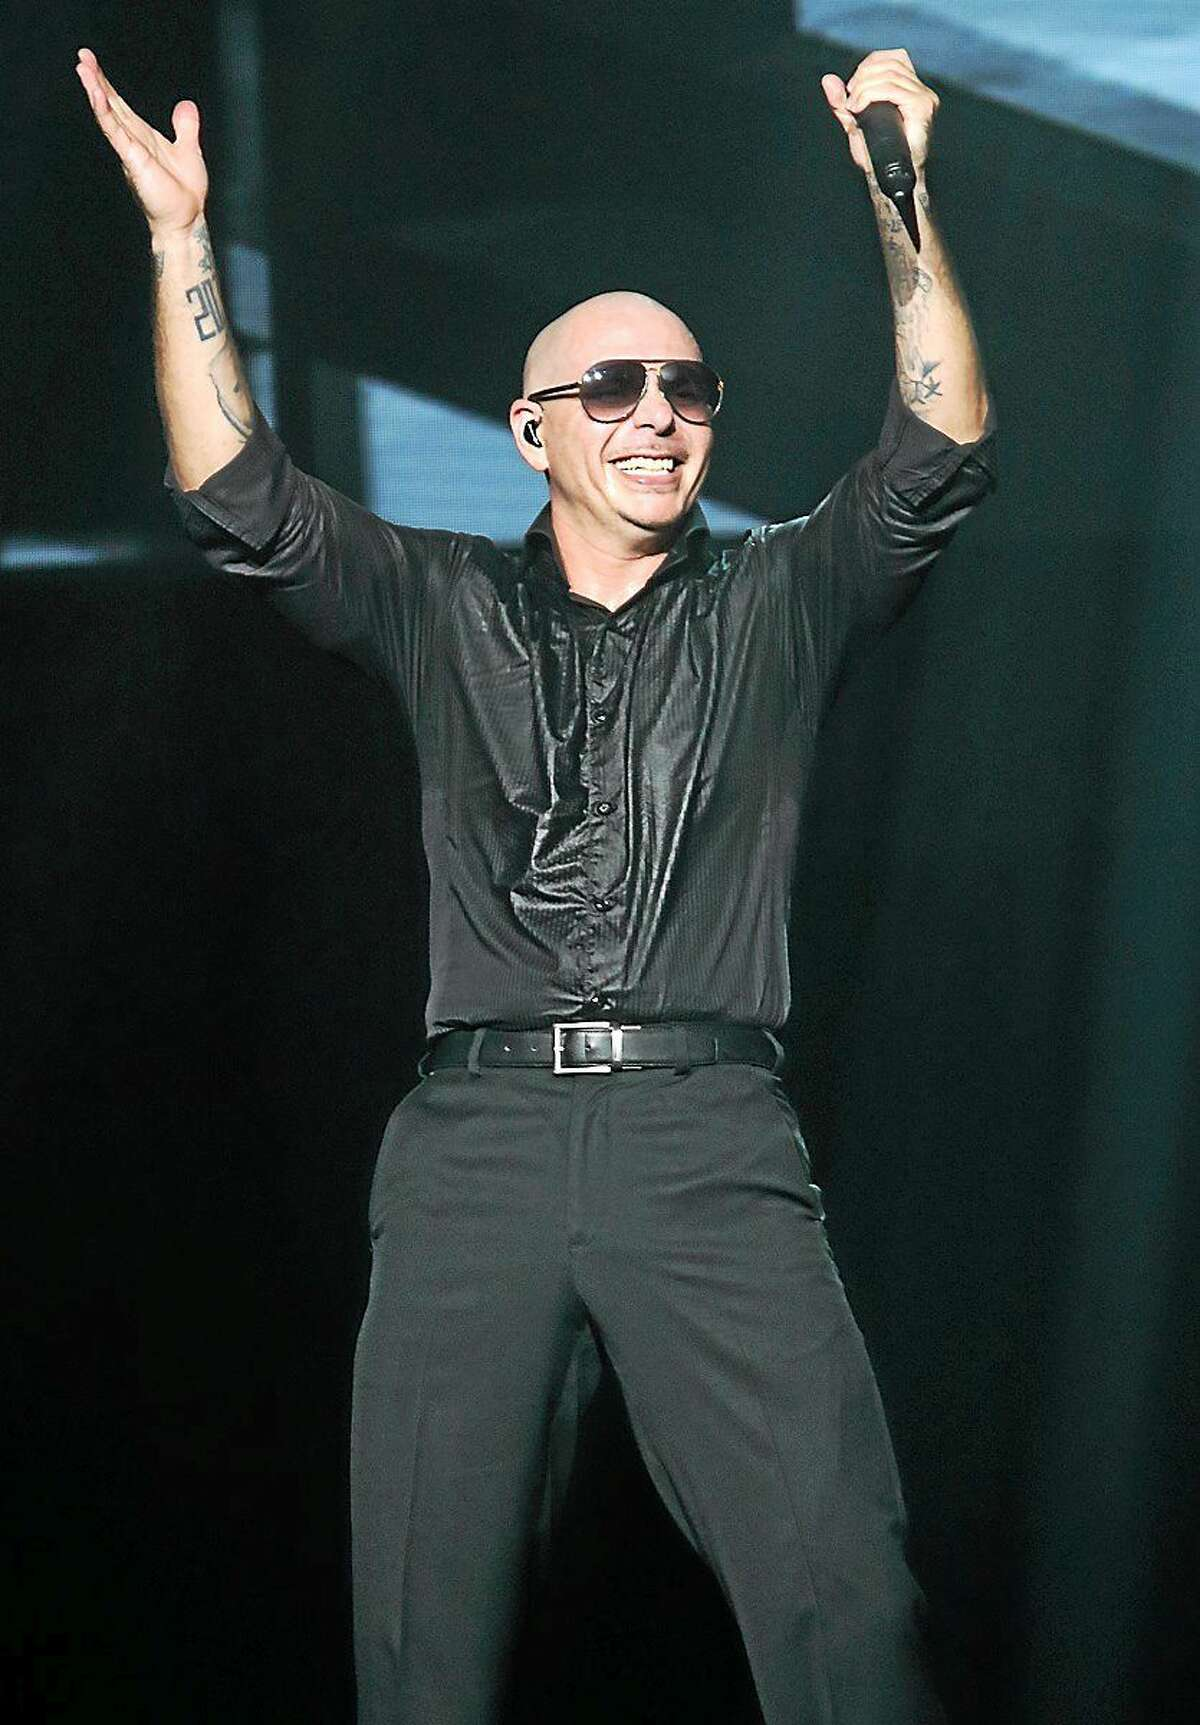 Photo by John Atashian Armando Perez, better known by his stage name Pitbull, is shown entertaining a sold out crowd of his fans at the Foxwoods Resort & Casino on Saturday night May 23. Pitbull is y on tour in support of his eighth studio album,ìGlobalization.î To learn more about the upcoming concerts coming to Foxwoods, visit www.foxwoods.com